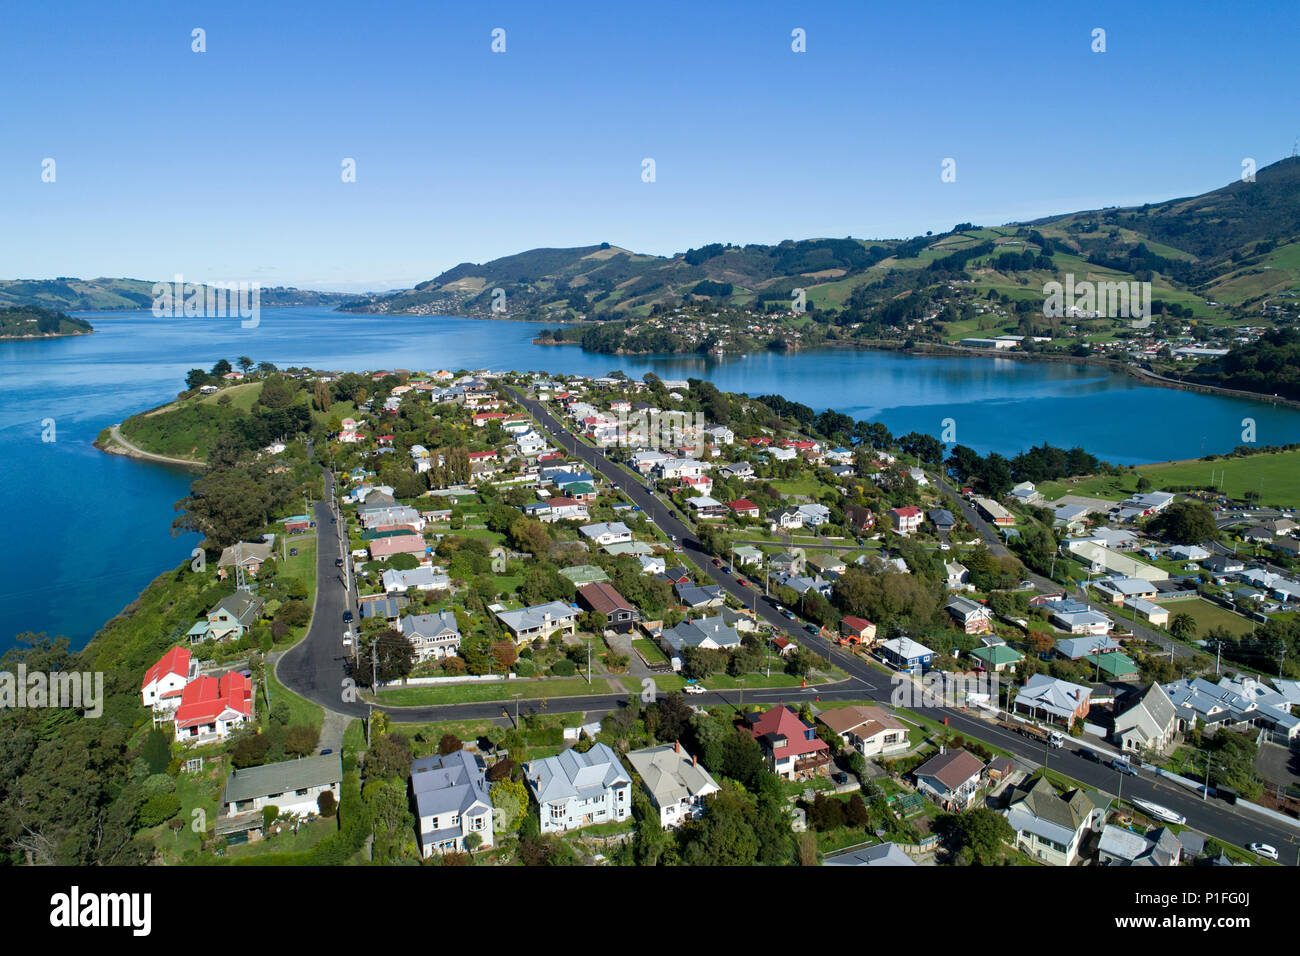 Port Chalmers, and Otago Harbour, Dunedin, Otago, South Island, New Zealand - drone aerial - Stock Image